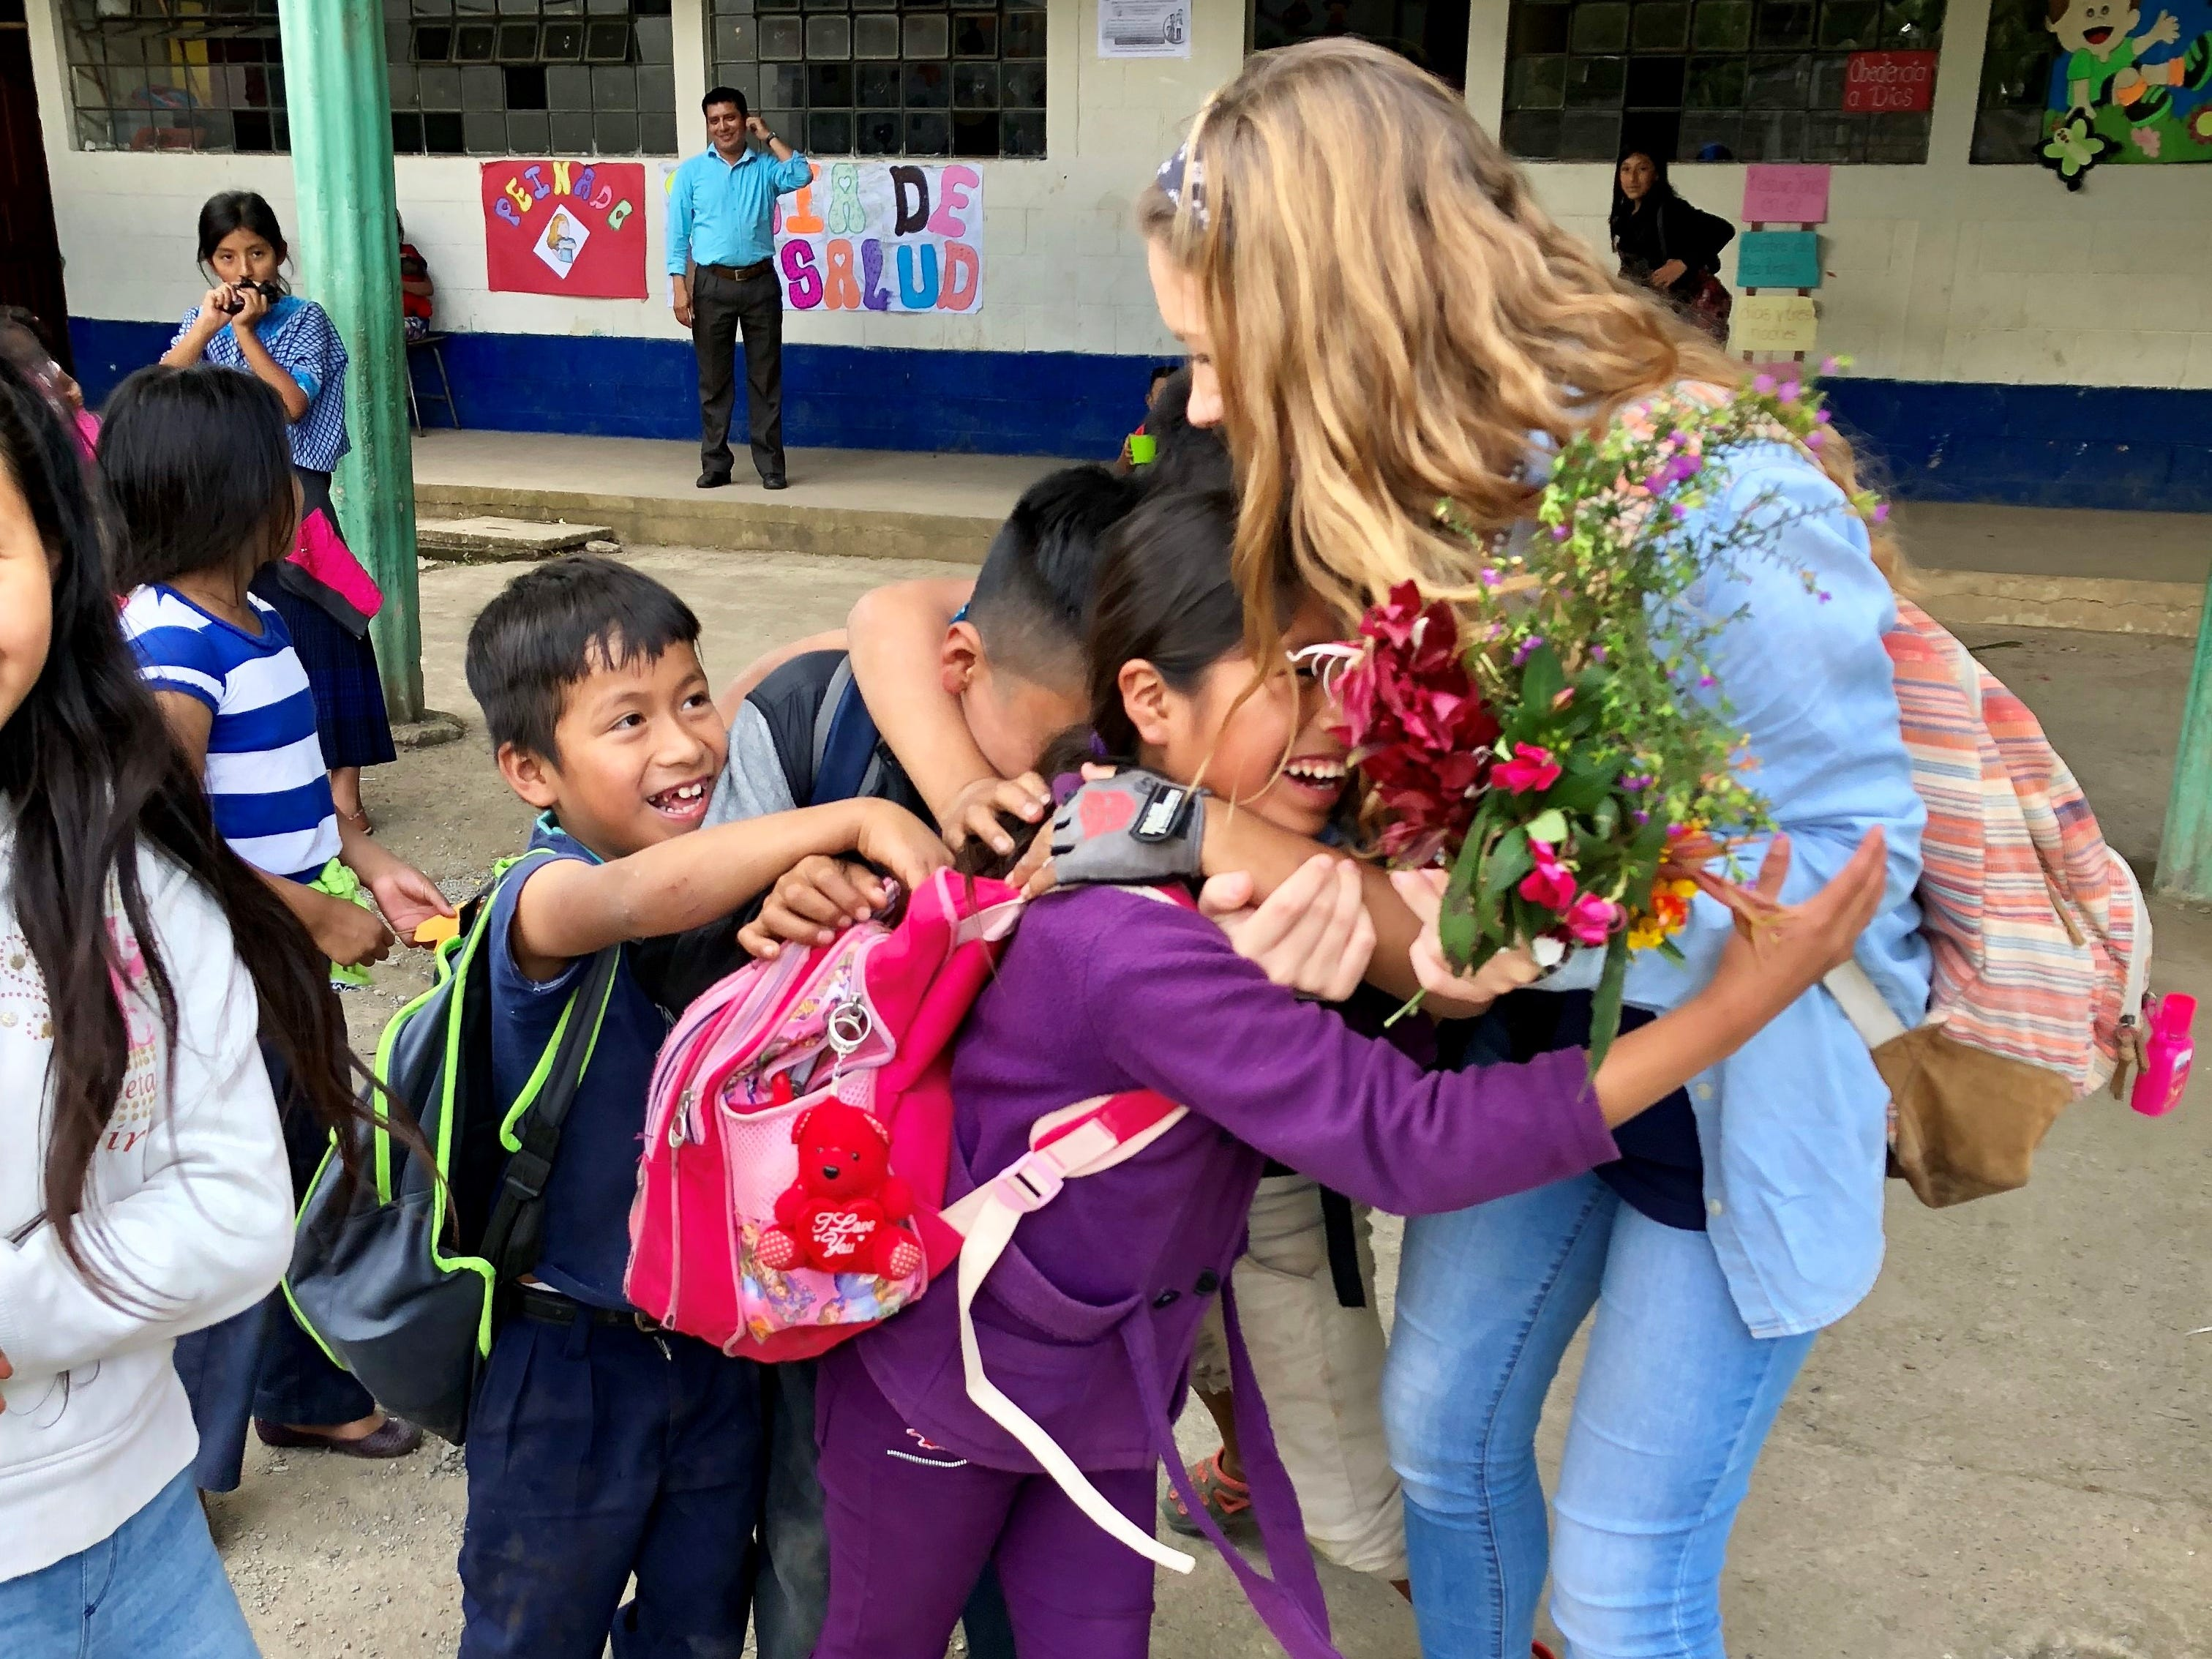 Cassidy Armstrong gets a group hug from elementary students at a school in Chicoyoj I, a rural community in Guatemala.